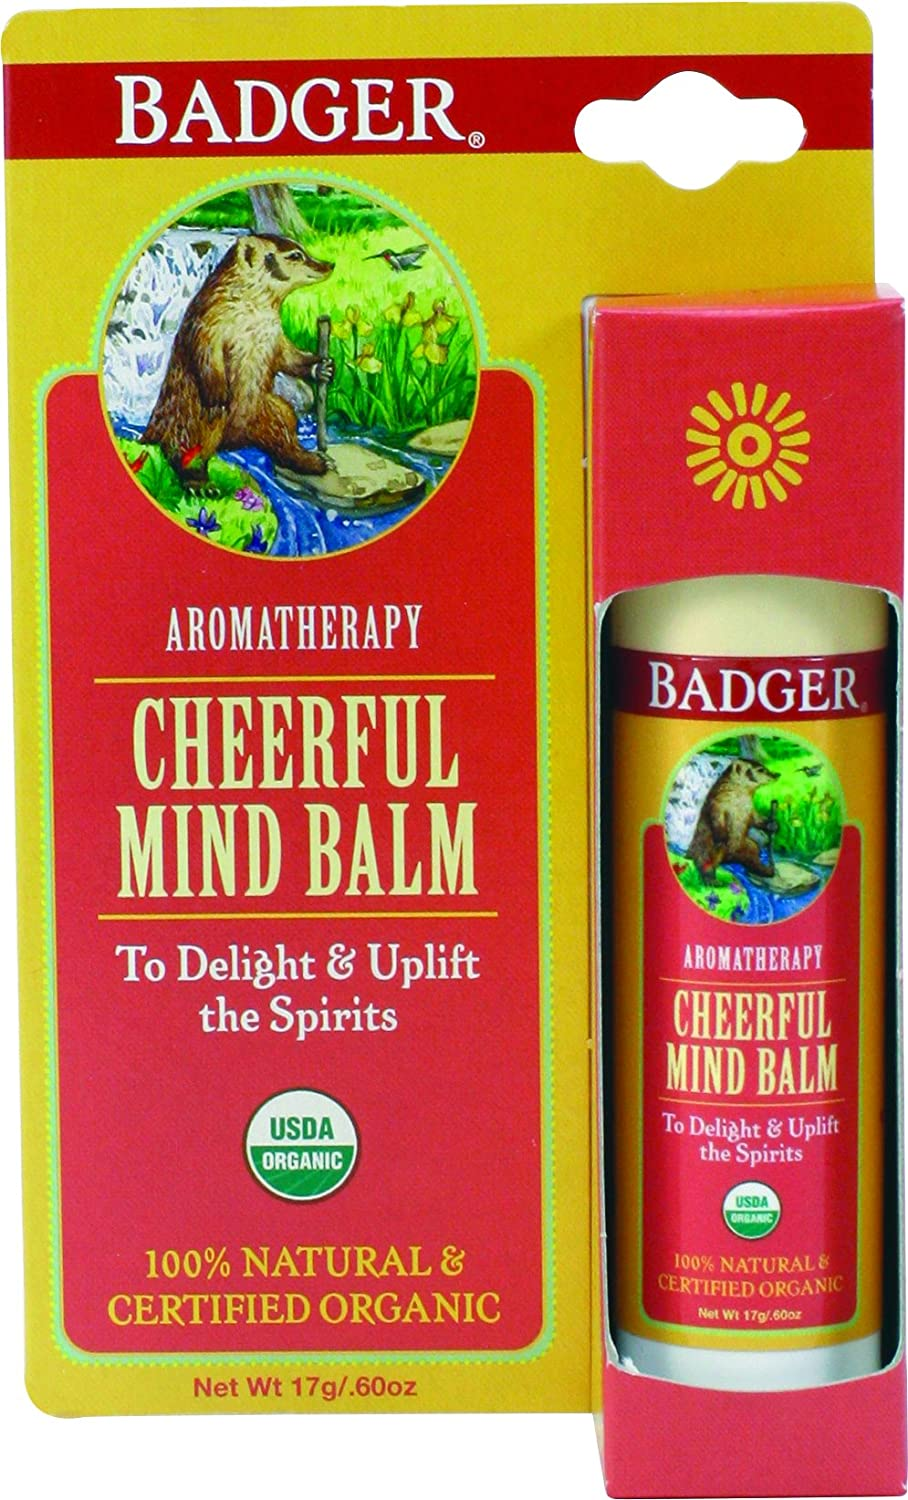 Cheerful Mind Balm 1 x 17g